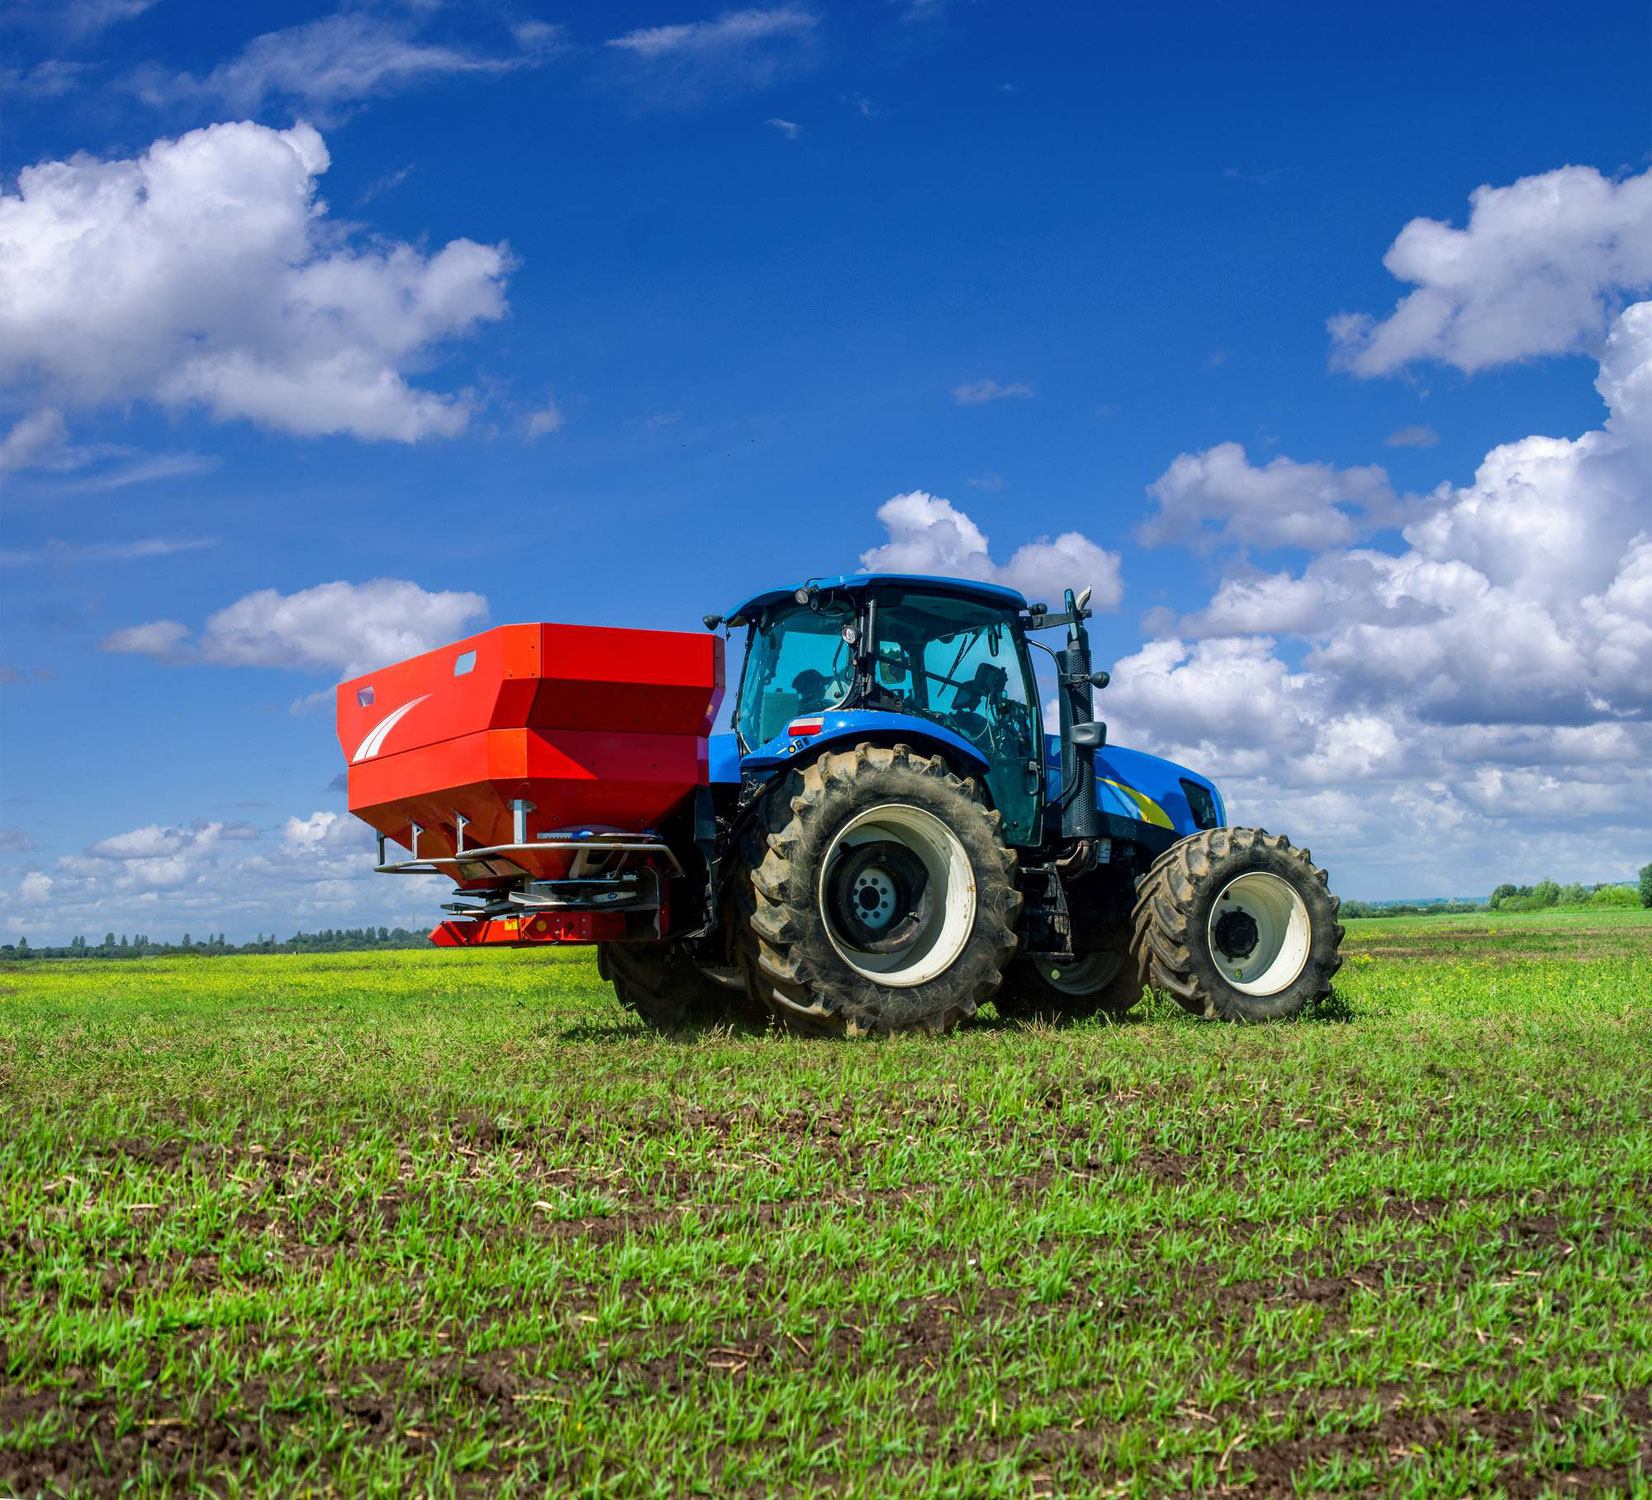 Regulation (EU) 2019 / 1148 for all actors in the fertilizer supply chain